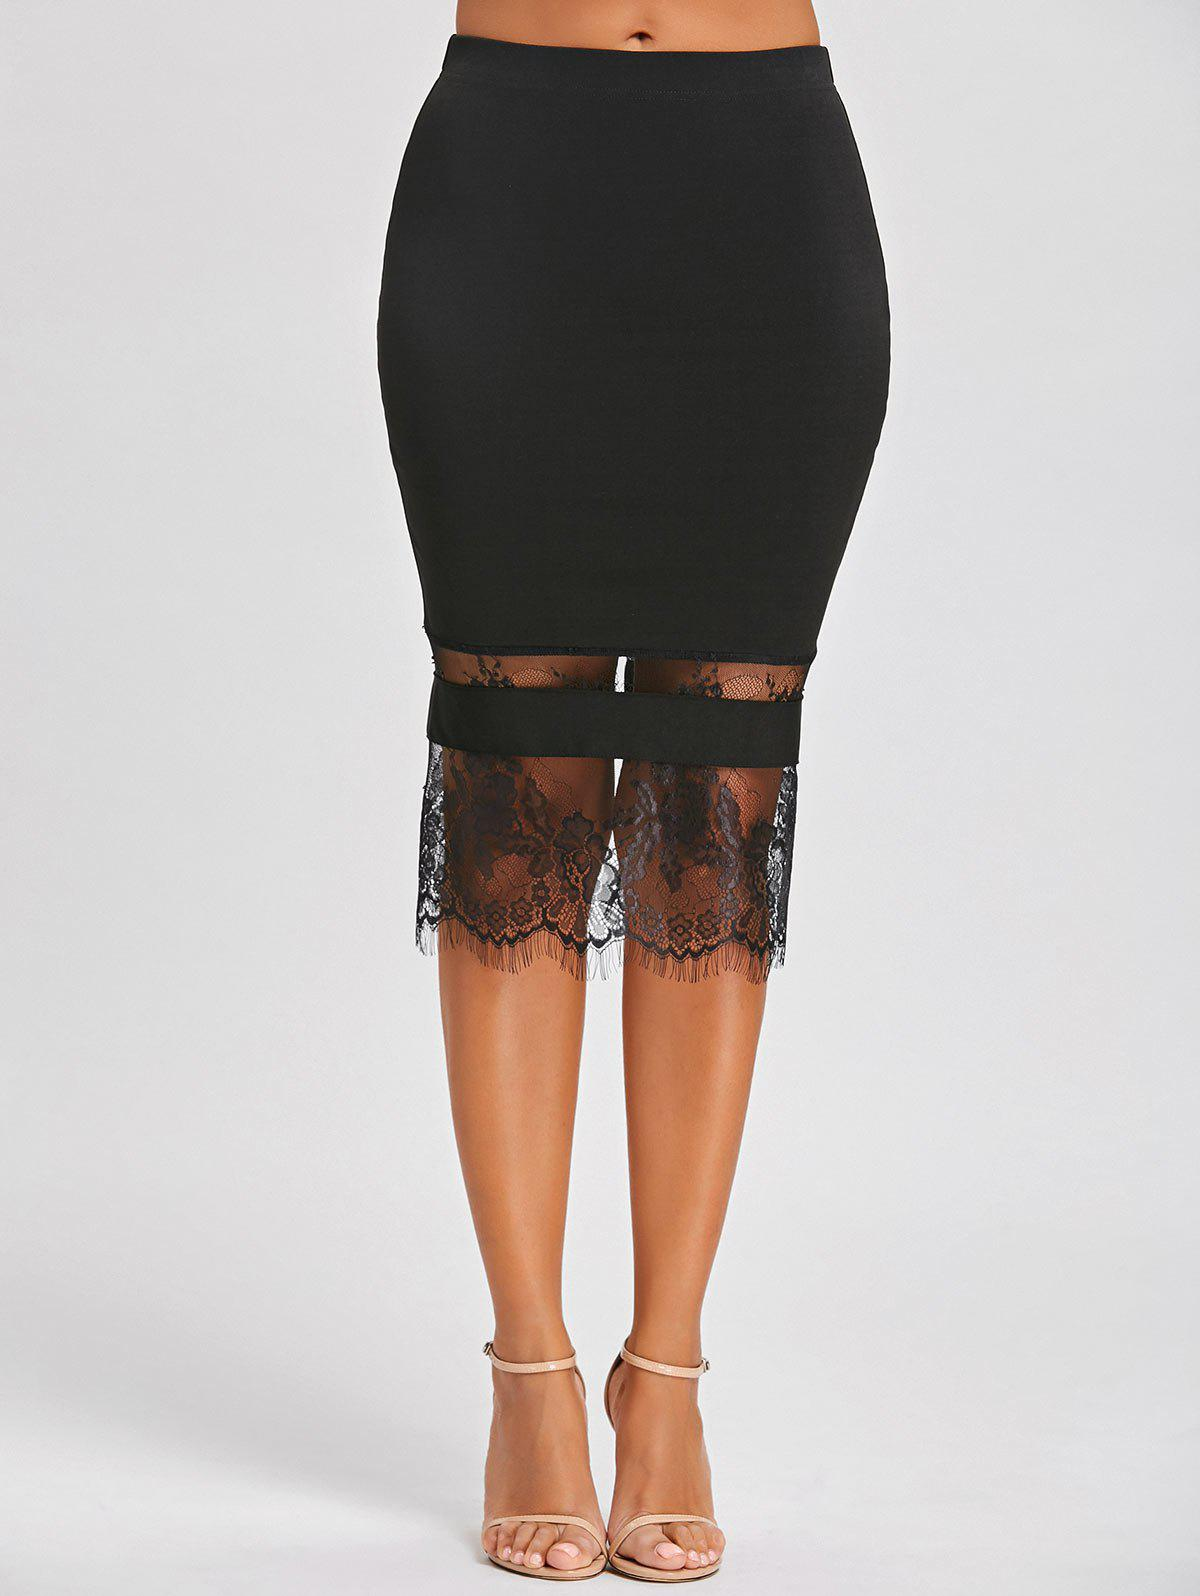 Lace Insert Midi Bodycon SkirtWOMEN<br><br>Size: 2XL; Color: BLACK; Material: Polyester,Spandex; Length: Mid-Calf; Silhouette: Bodycon; Pattern Type: Solid; Embellishment: Lace; Season: Fall,Spring; Weight: 0.1720kg; Package Contents: 1 x Skirt;